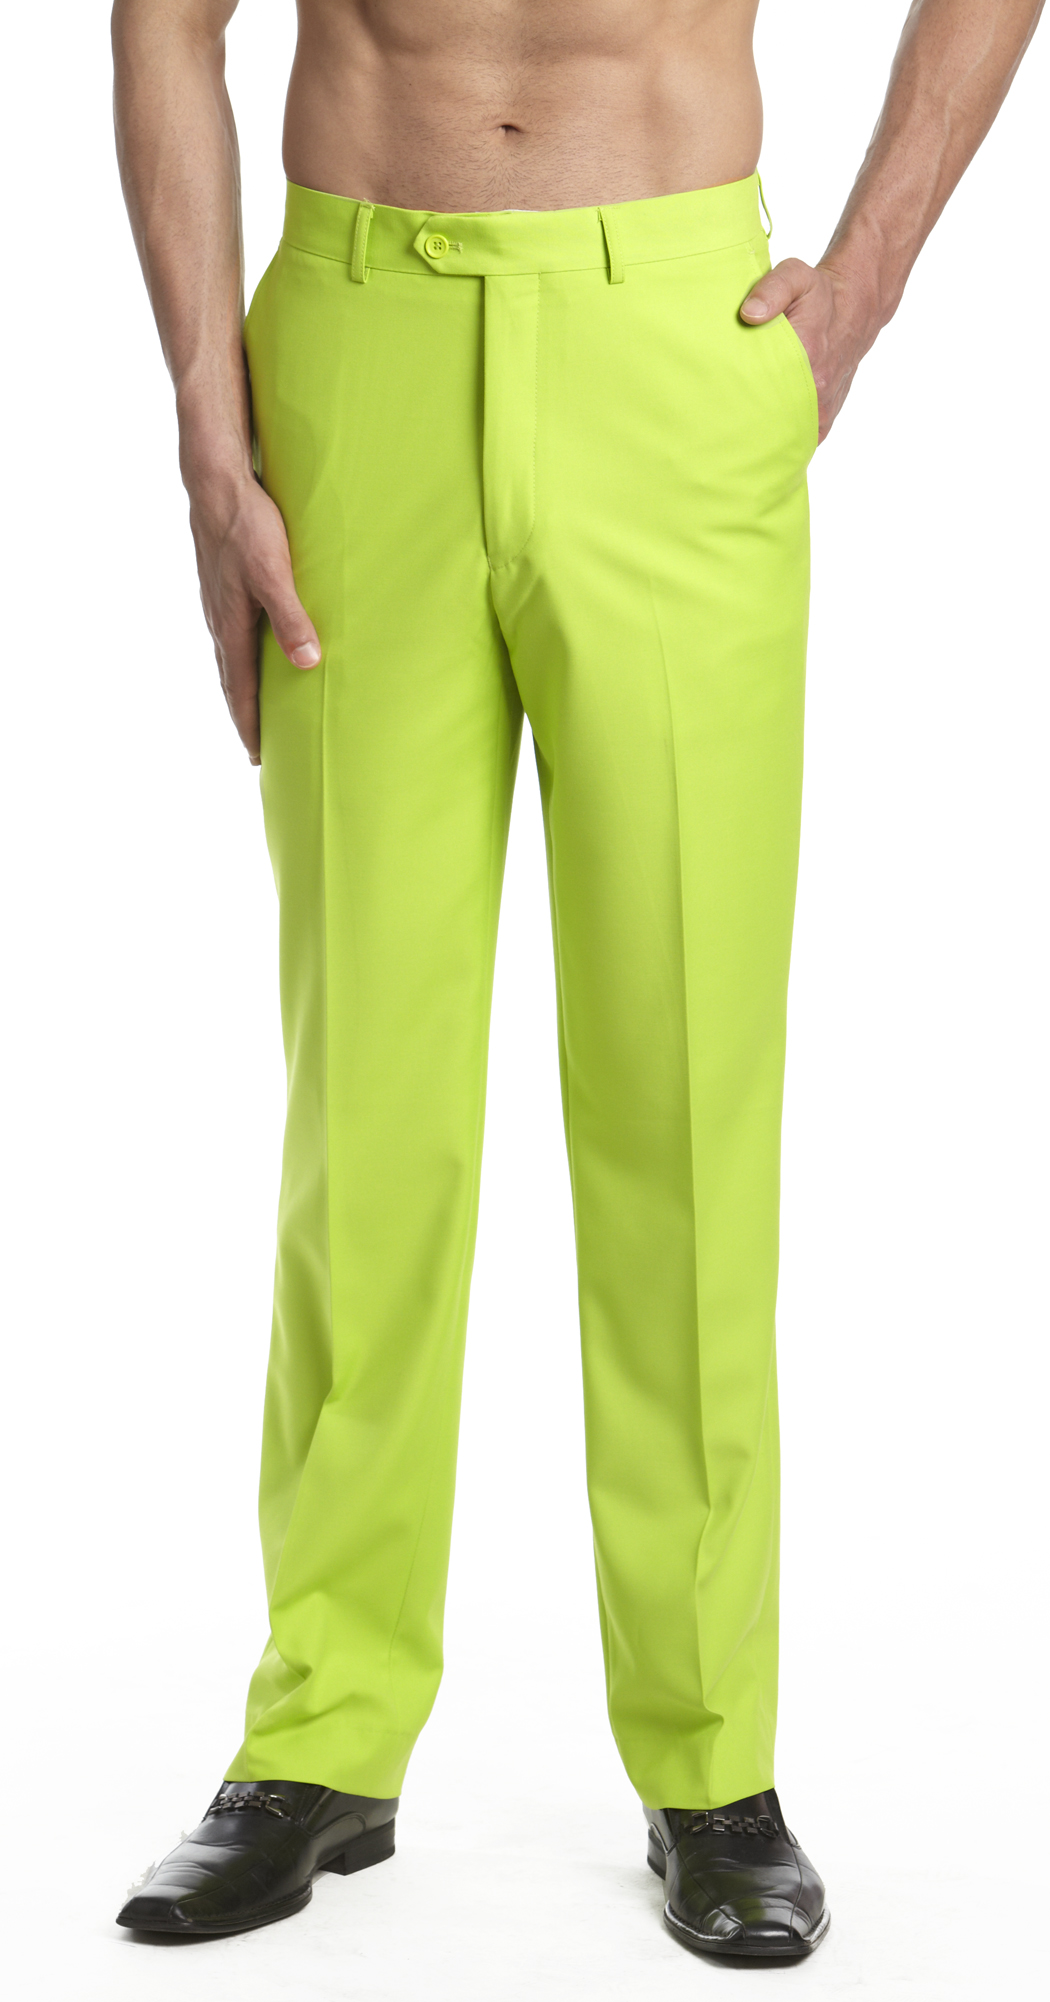 Find Casual Men's Green Pants, Dress Men's Green Pants and more at Macy's. Macy's Presents: The Edit - A curated mix of fashion and inspiration Check It Out .